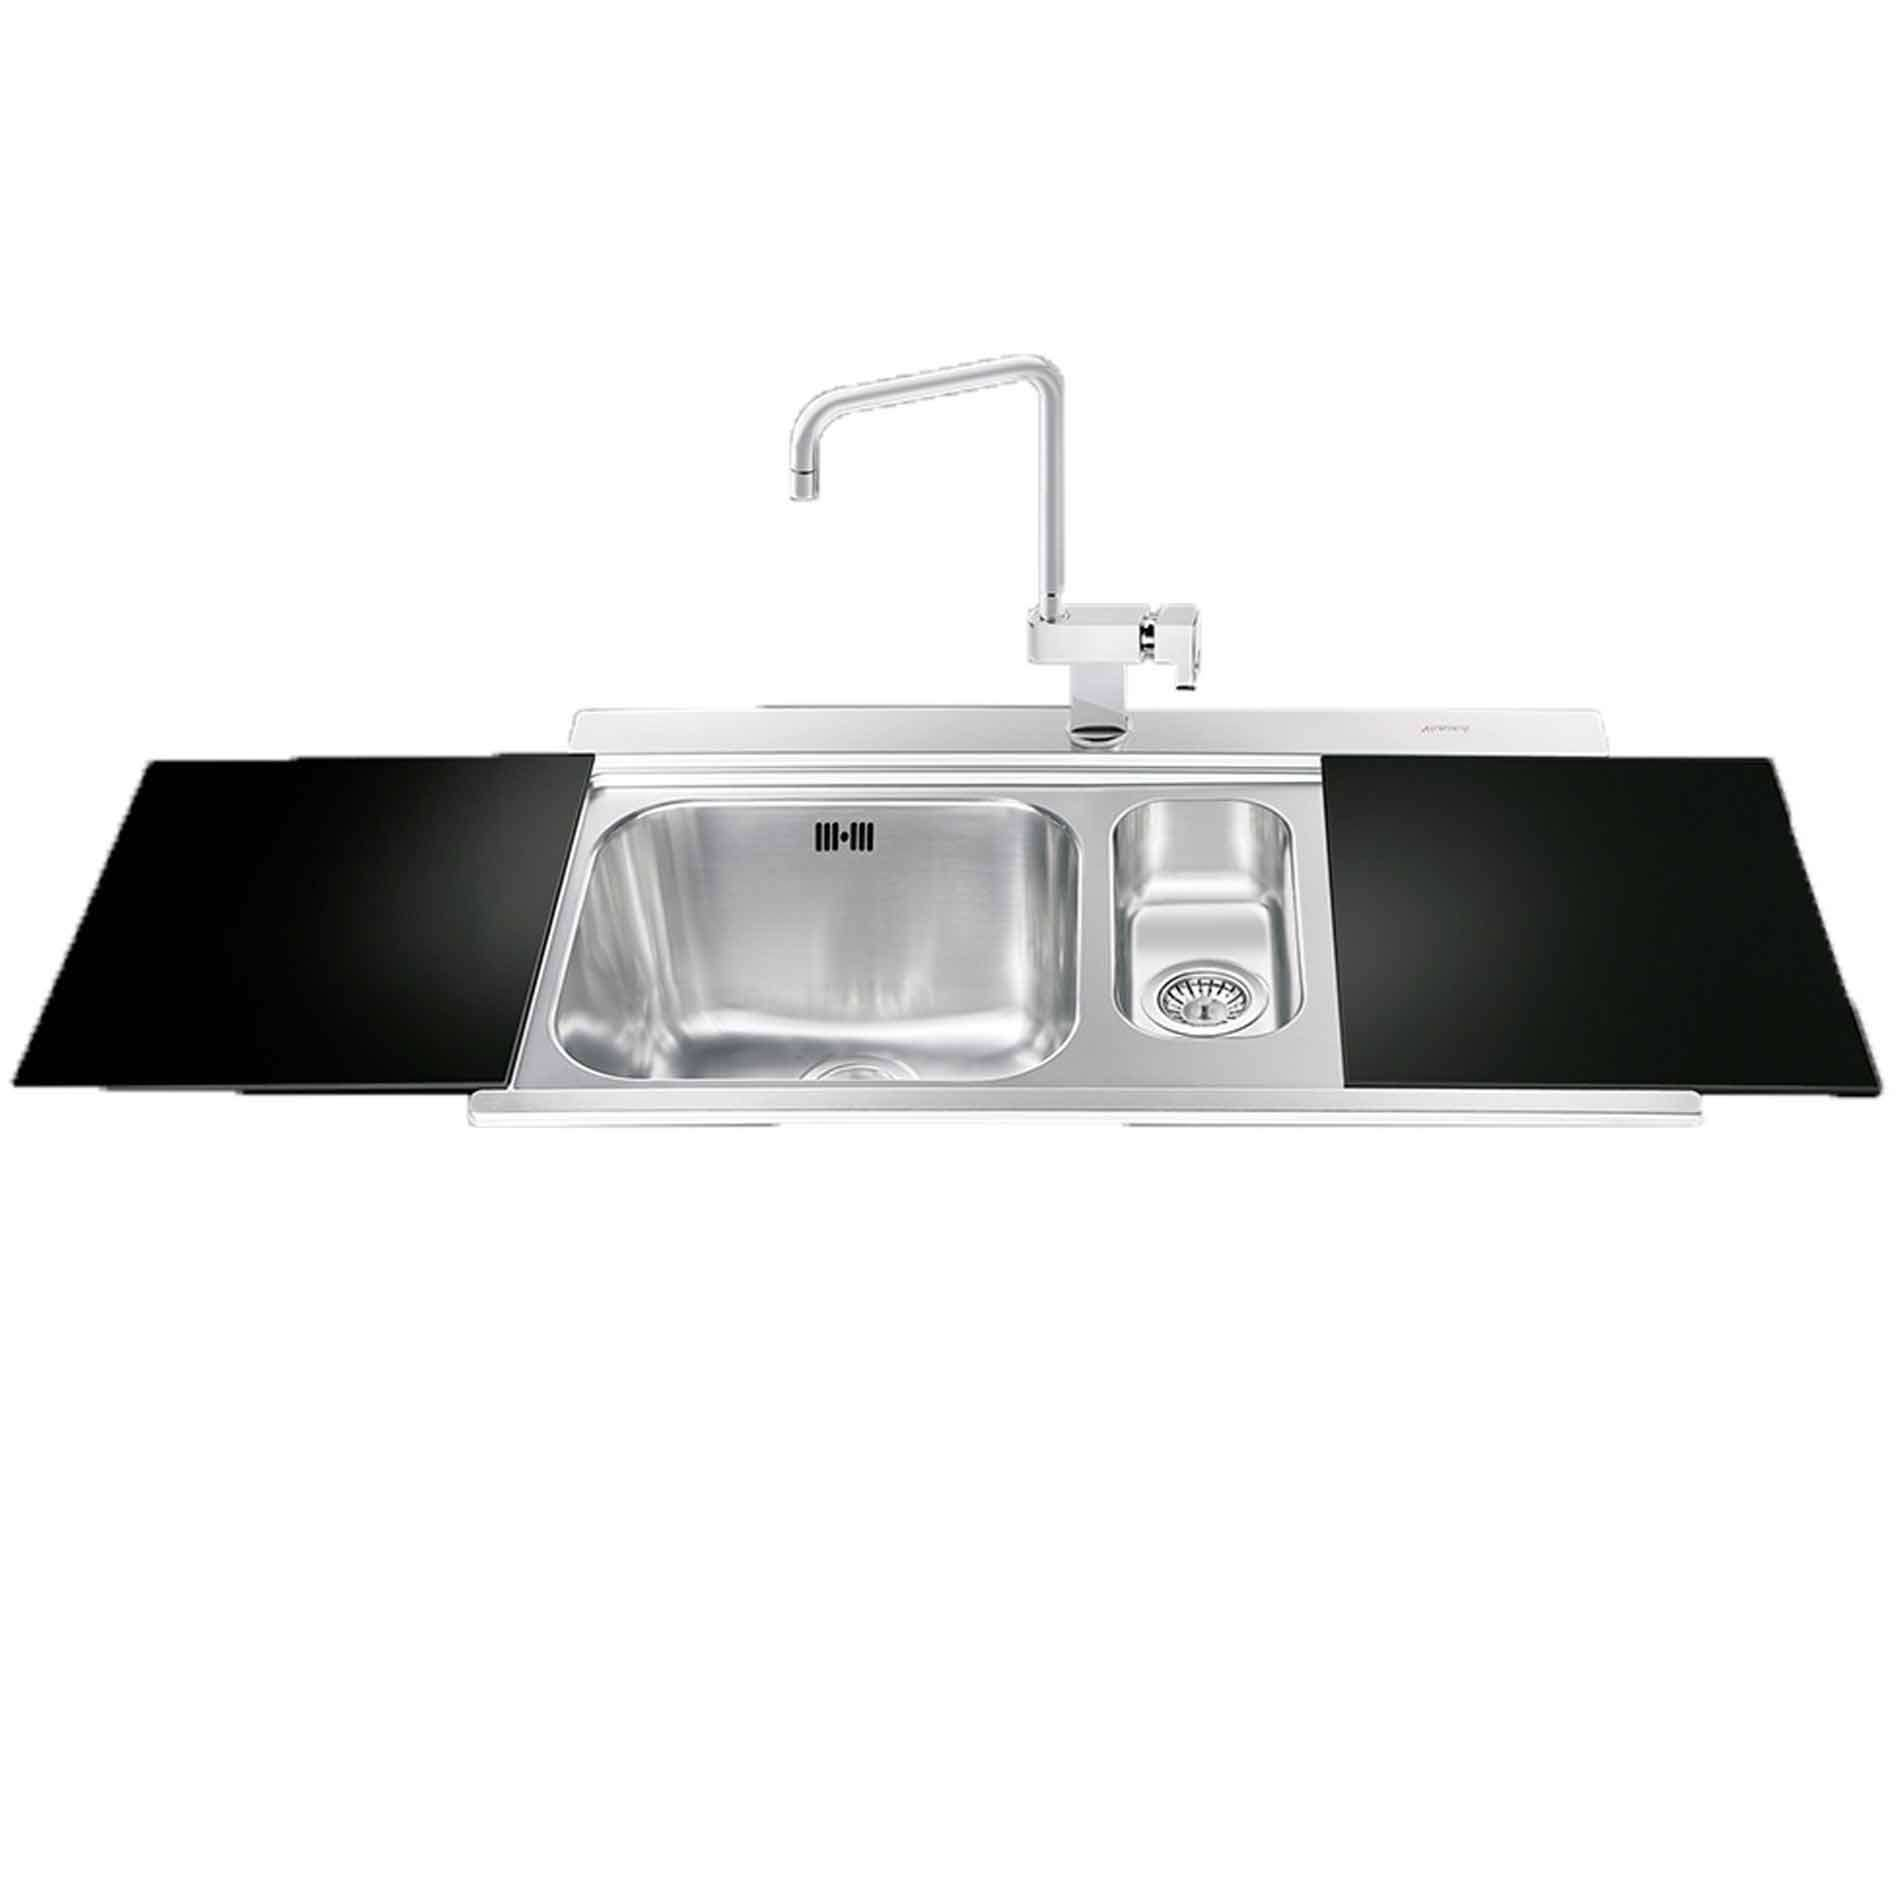 Black Kitchen Sink And Taps Smeg Li915n Iris 15 Bowl With Drainer Inset Sink With Black